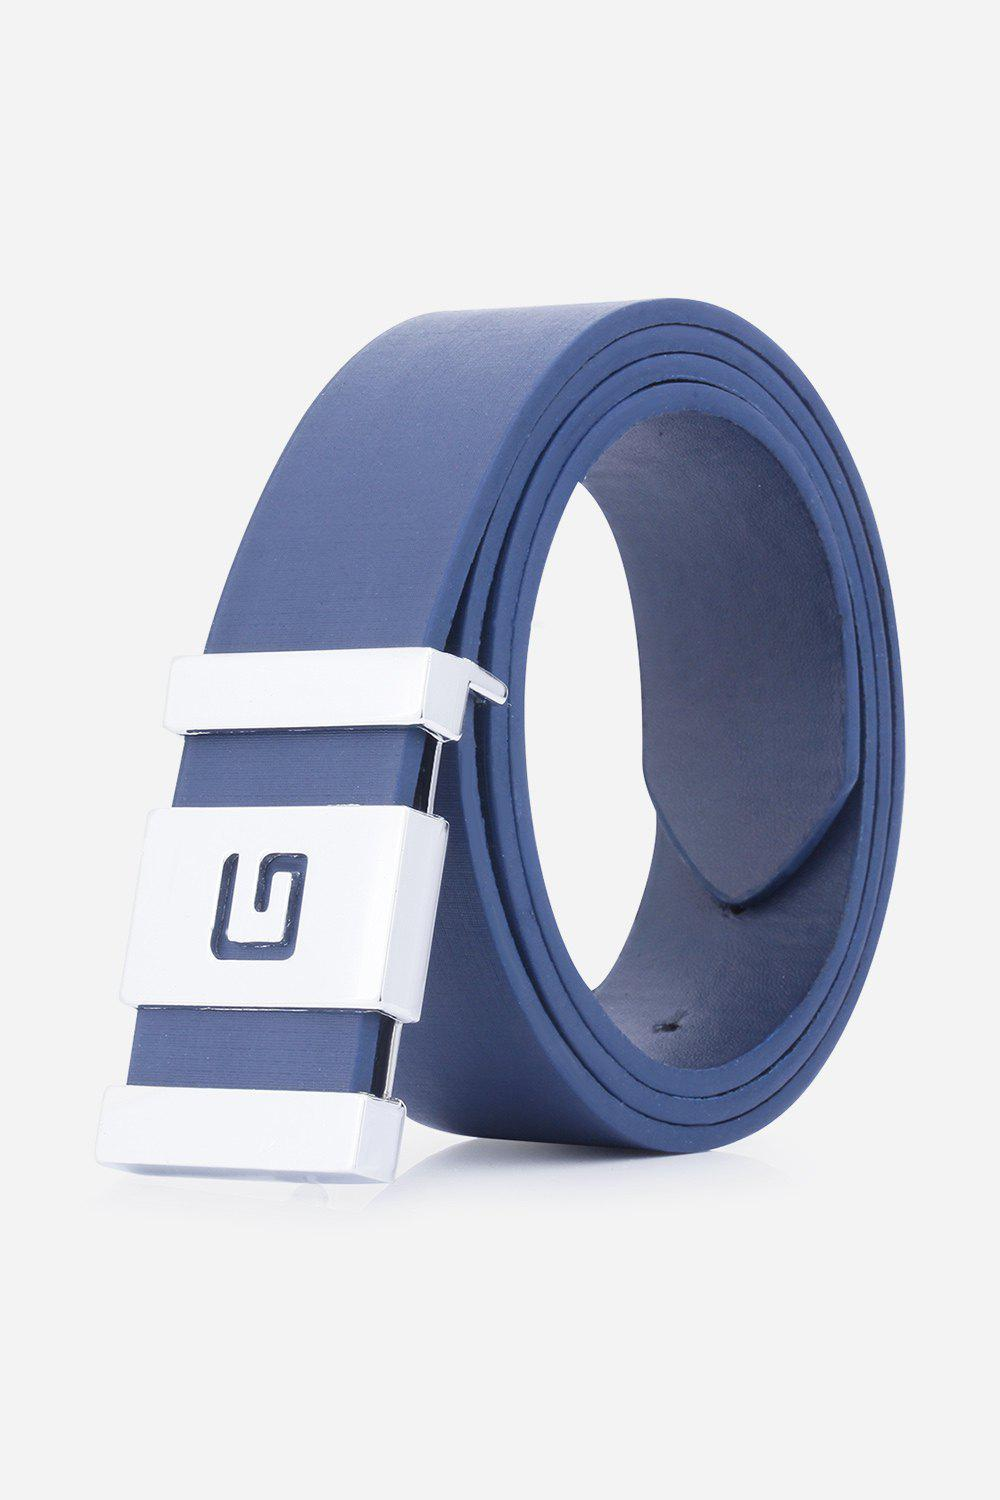 Stylish Letter G and Cut Out Design Buckle Men's Casual PU Belt - DEEP BLUE